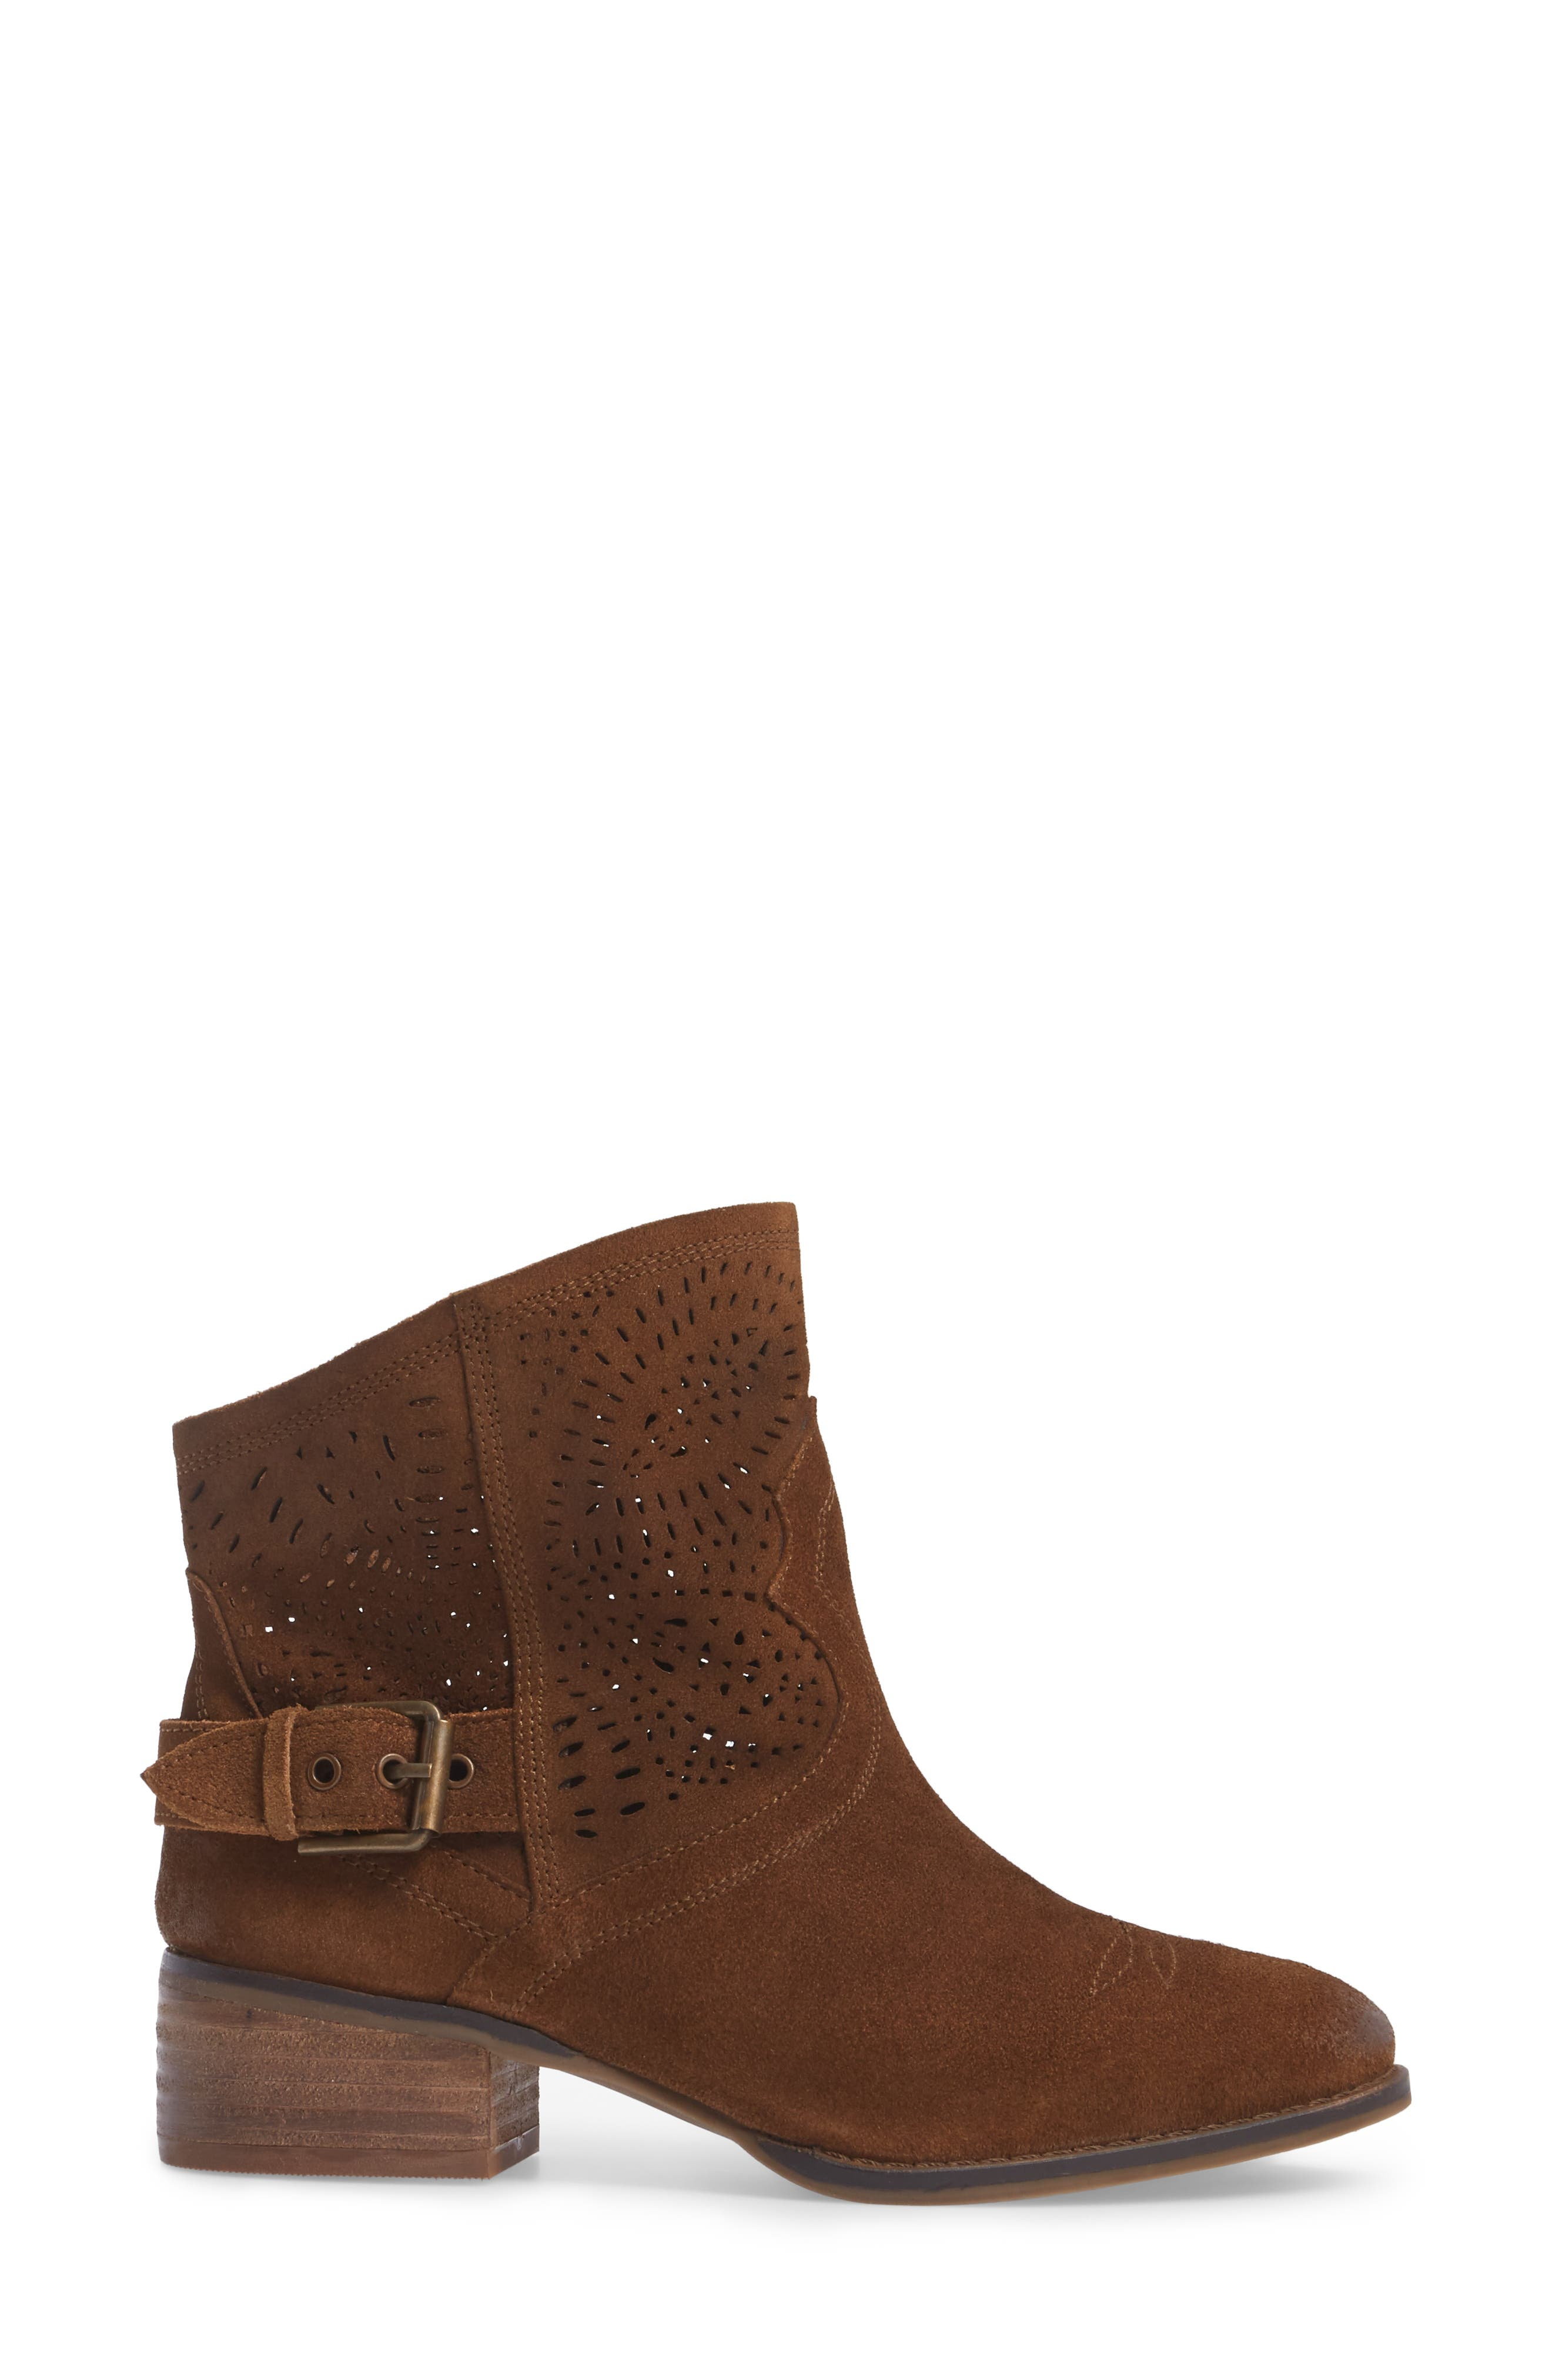 Zoey Perforated Bootie,                             Alternate thumbnail 10, color,